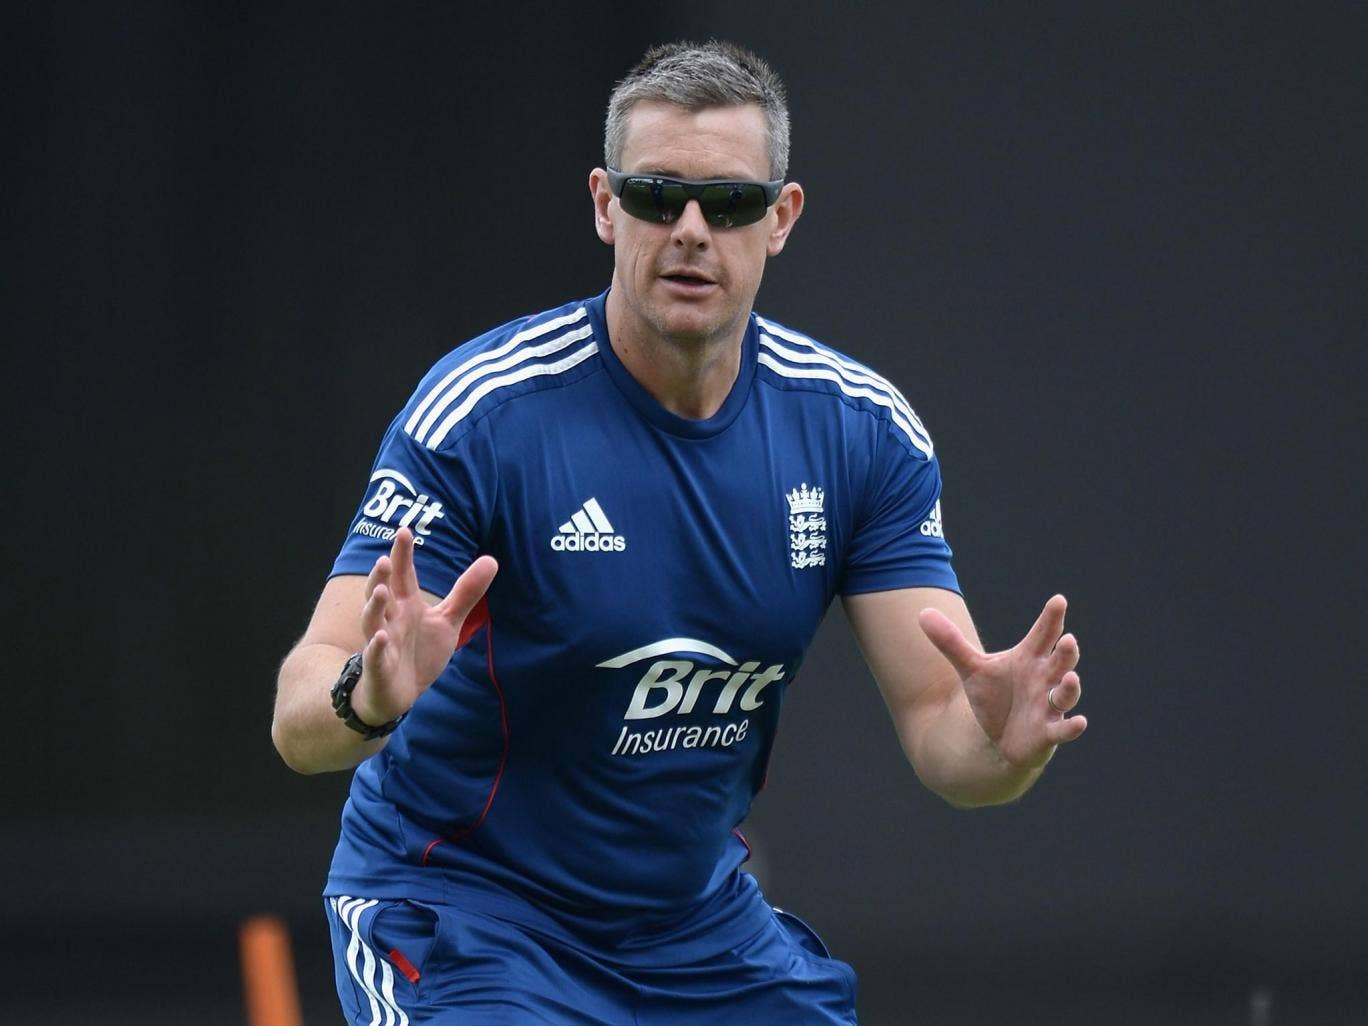 Ashley Giles during a nets session in Antigua yesterday